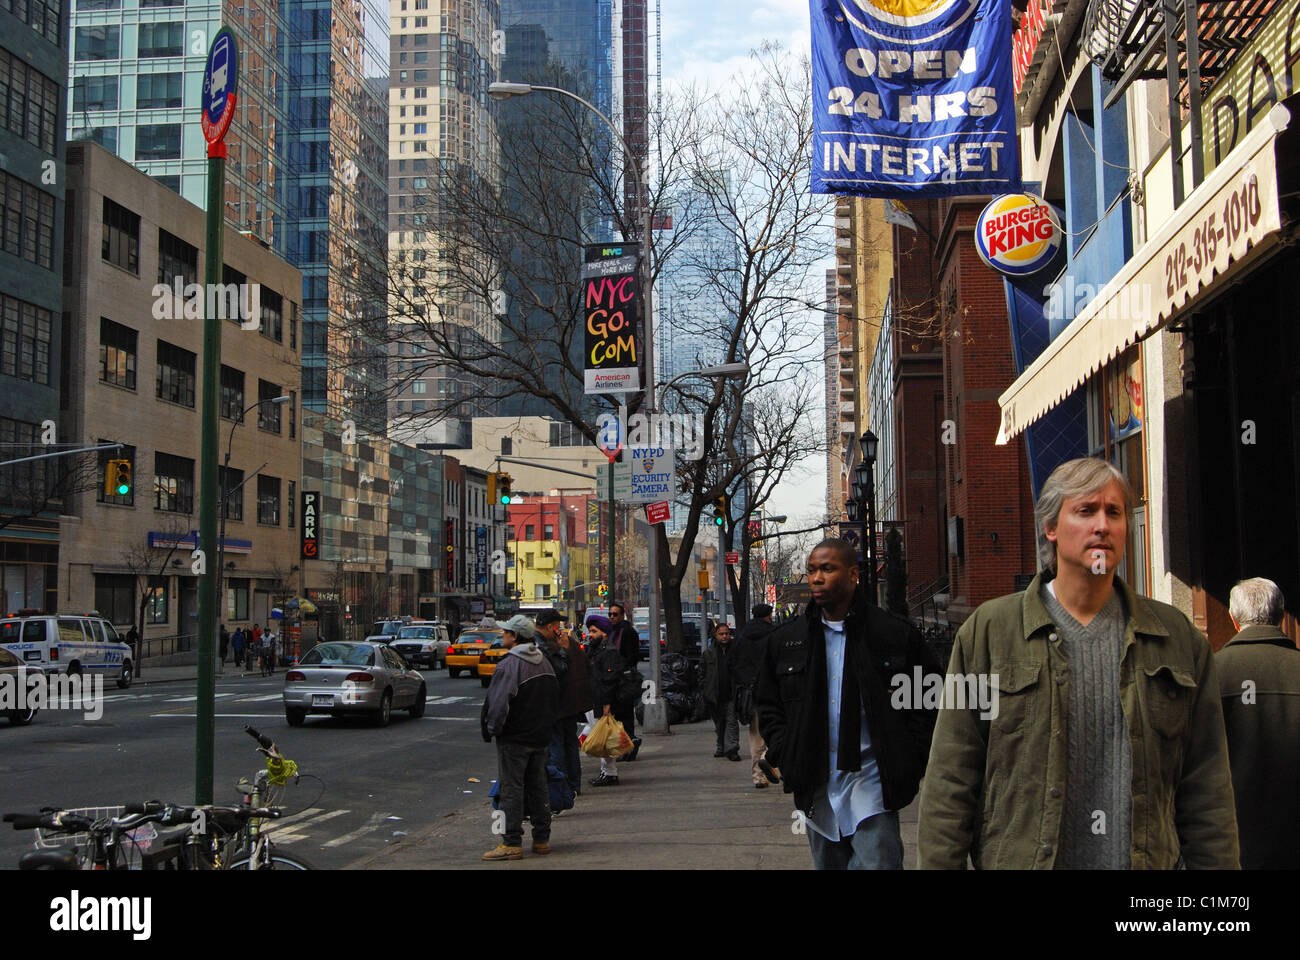 People walking along busy shopping street, Manhattan, New York, United States of America. - Stock Image